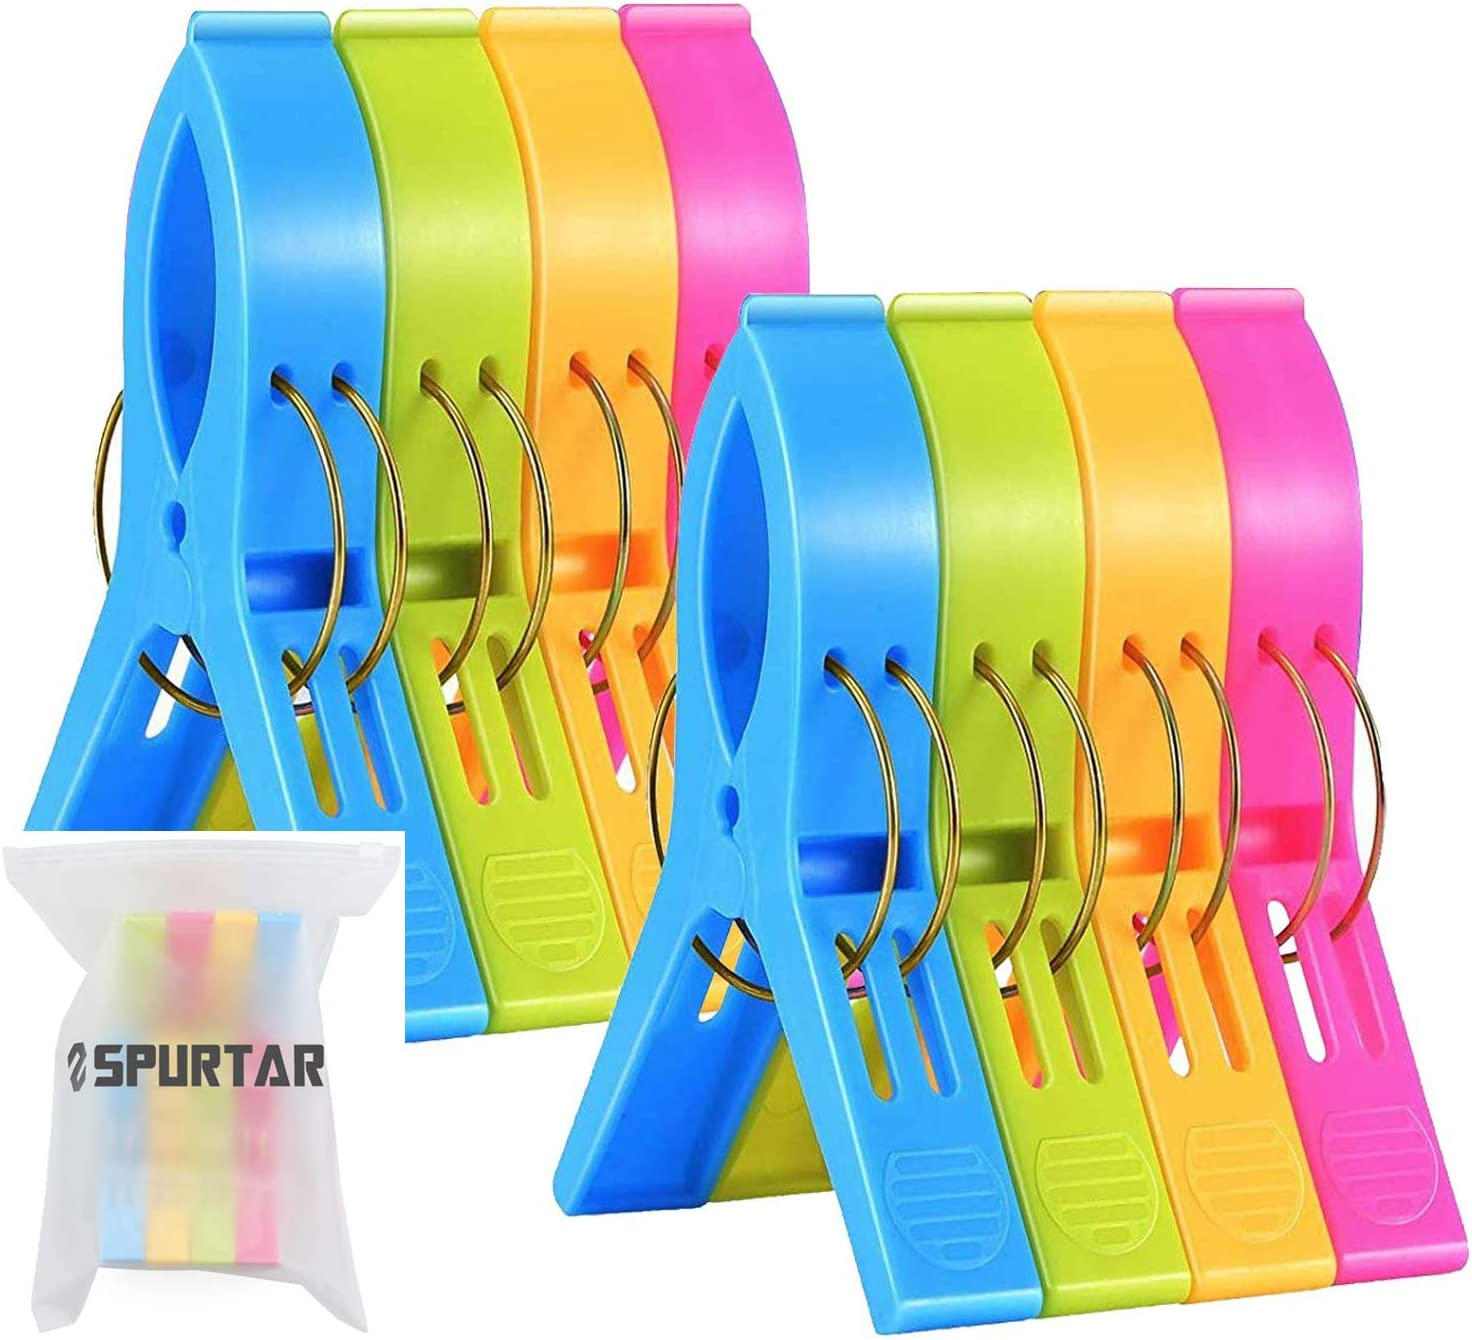 Spurtar Beach Towel Clips (8 Pack) Beach Chair Clothes Pegs, Large Size Beach Chair Towel Clips